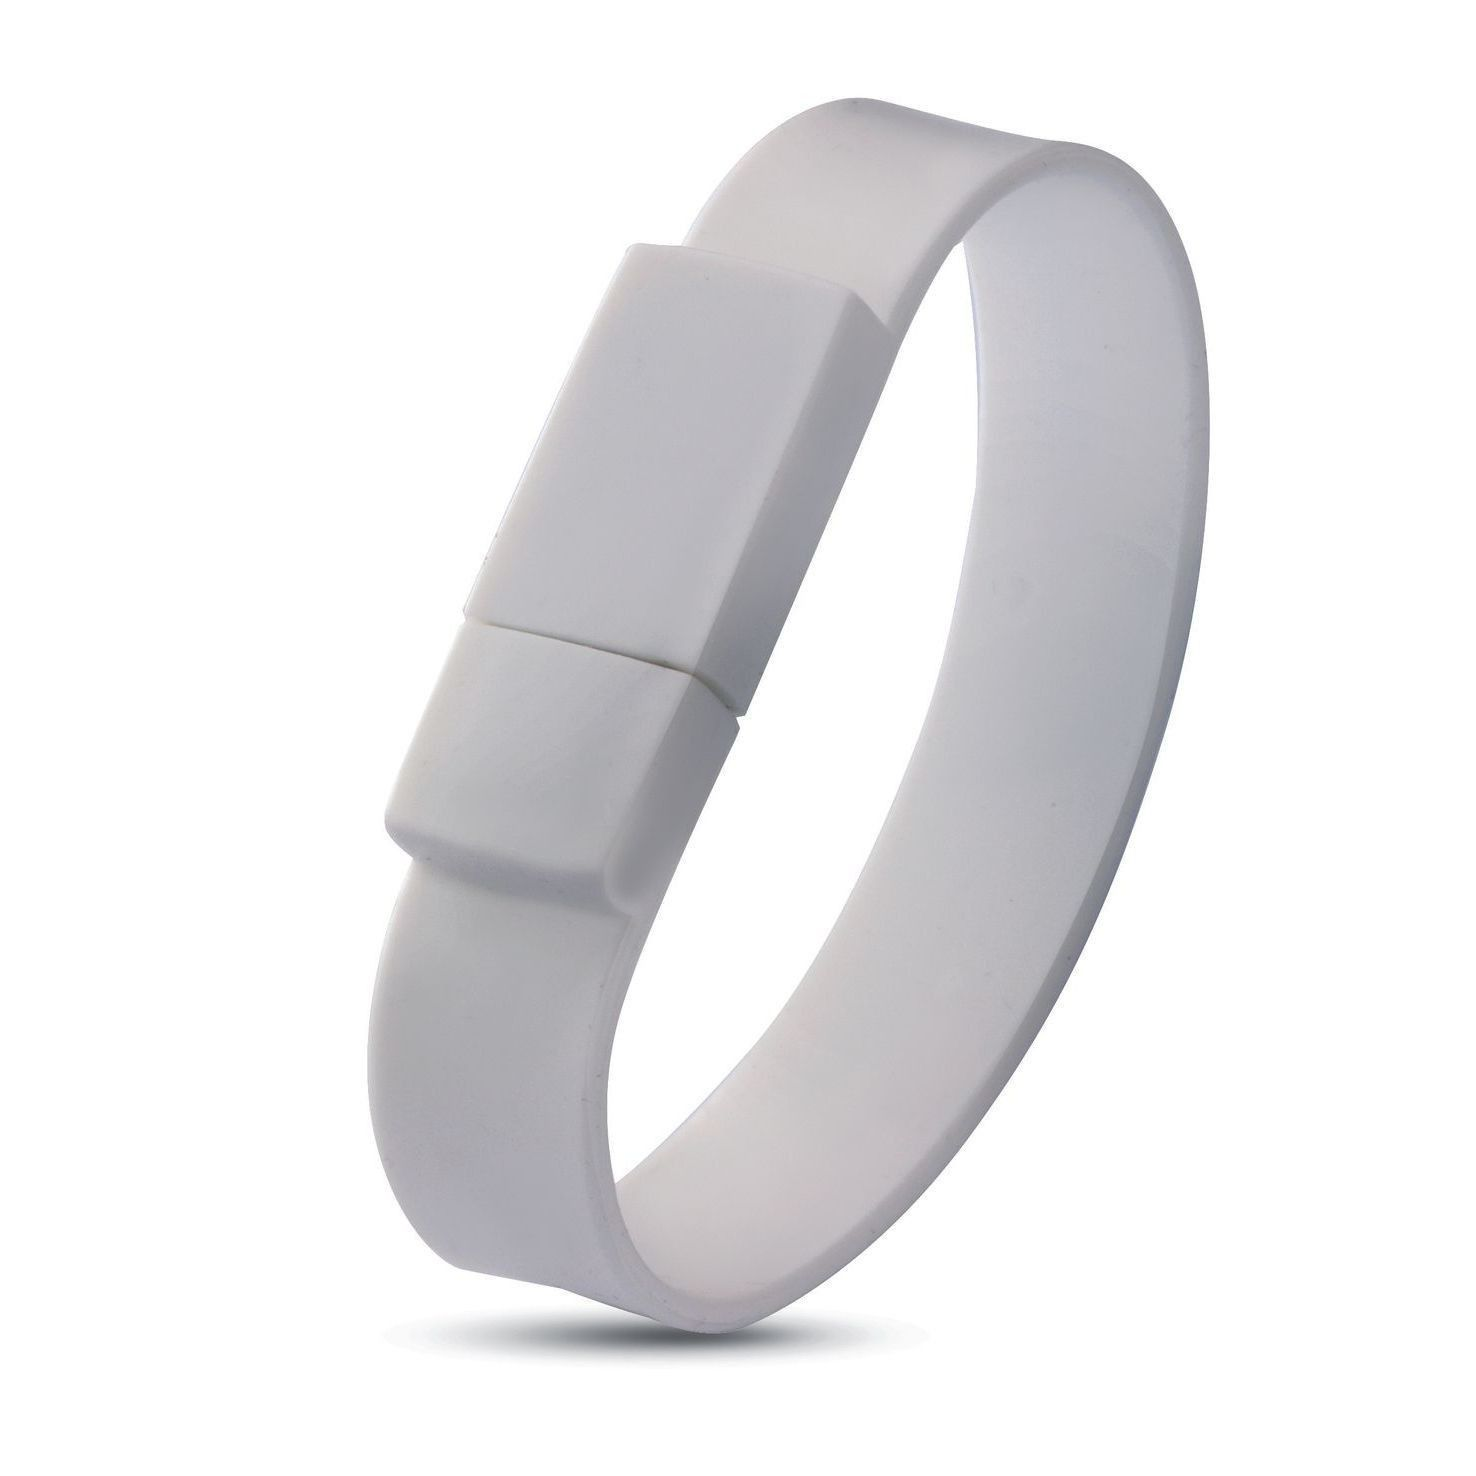 Witte USB armband 8GB